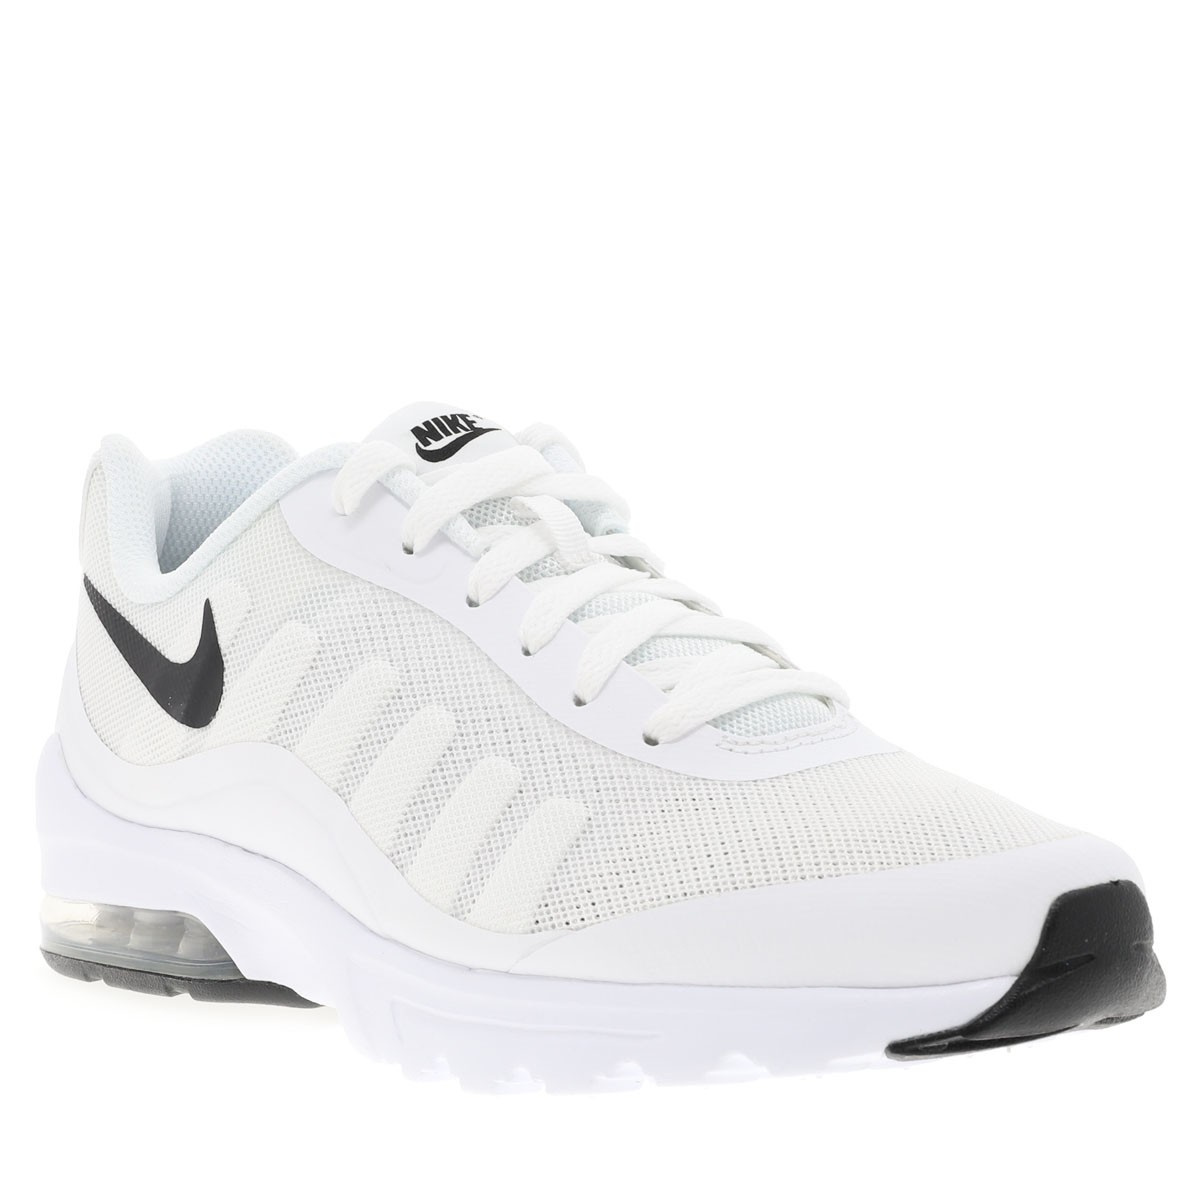 NIKE Baskets Air Max INVIGOR homme blanc